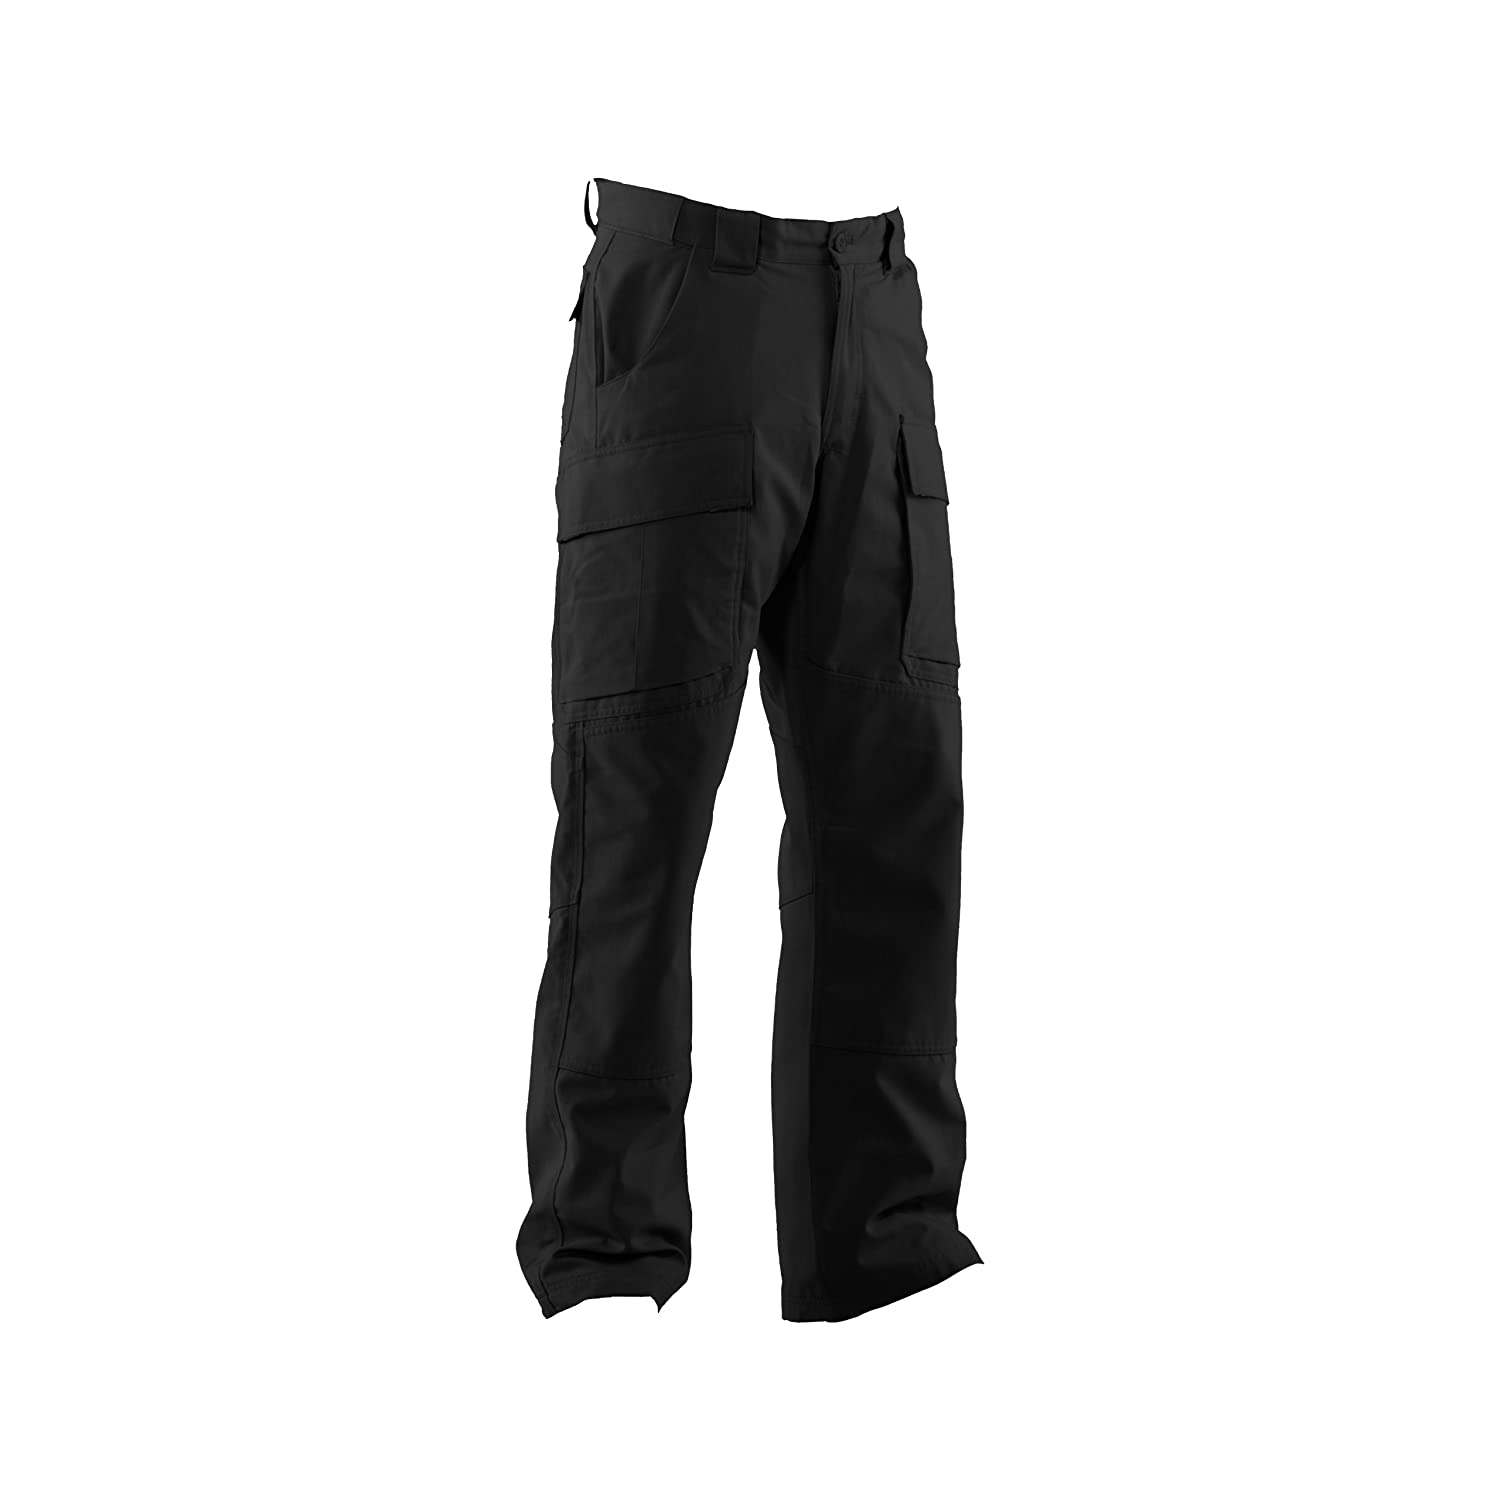 Under Armour Hose Tactical Cargo Tac Duty Pant Allseasongear, Schwarz, UA1230536S-3034